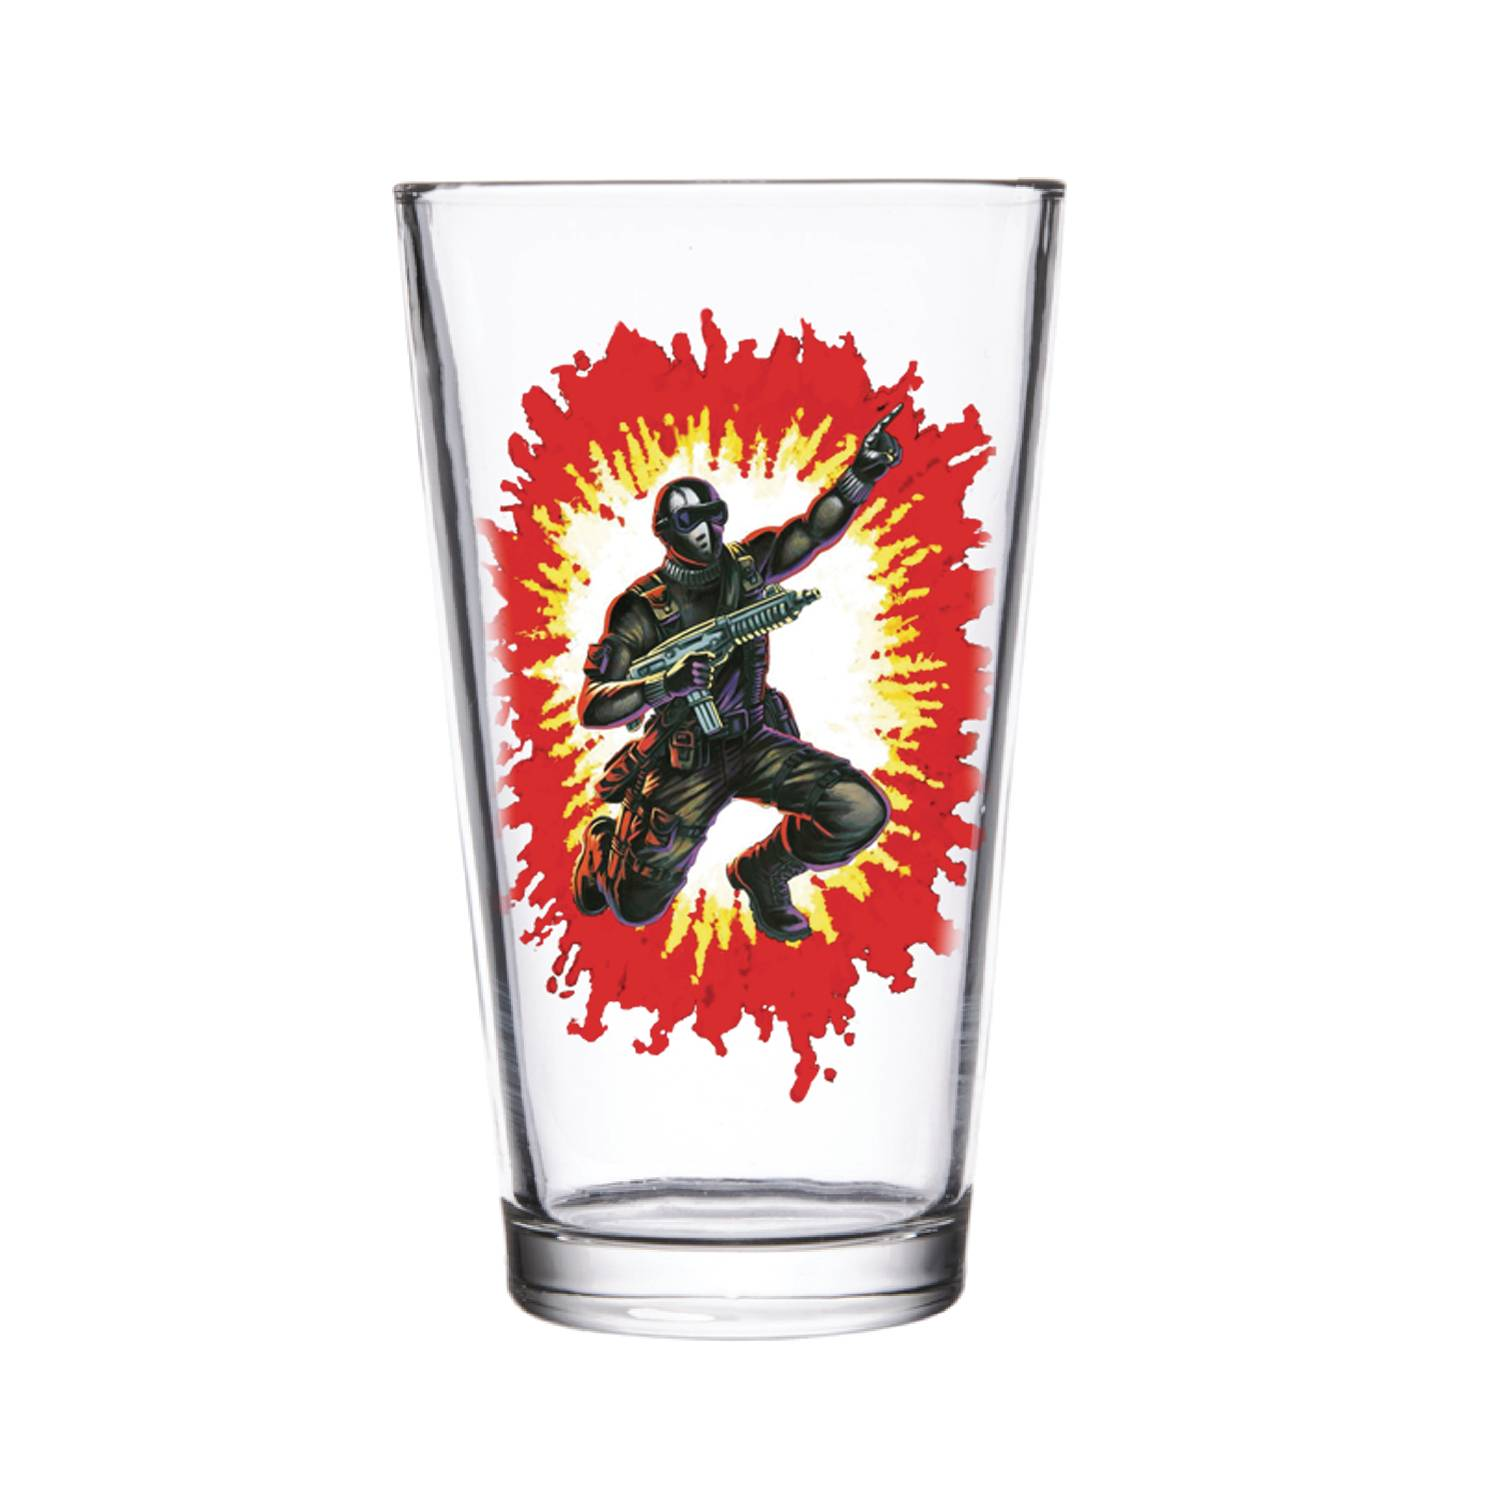 SUPER 7 GI JOE SNAKE EYES PINT GLASS